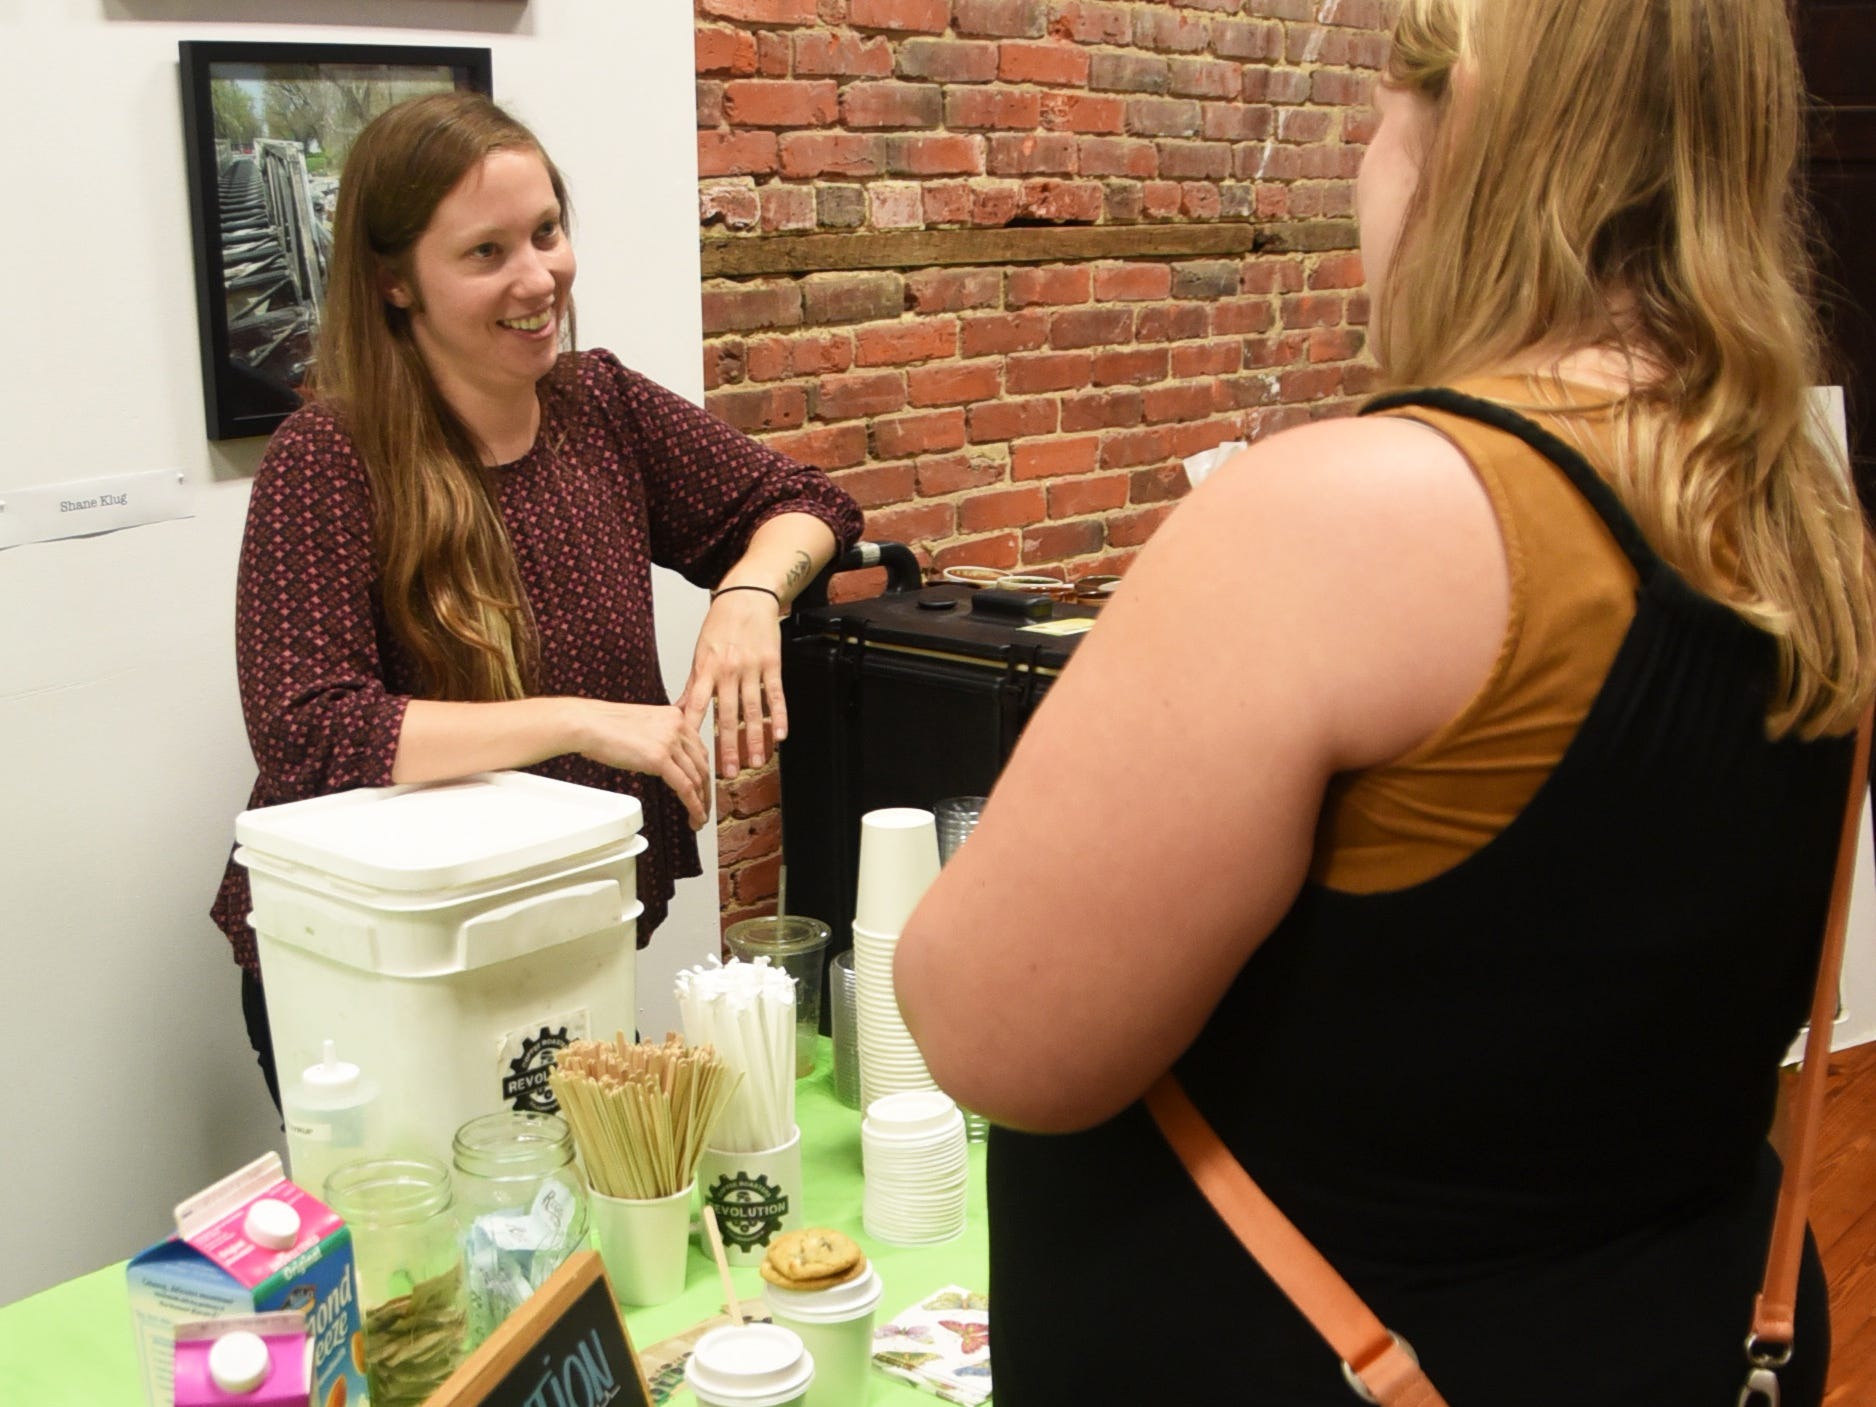 Lindsey Ferguson of Revolution Coffee, left, speaks with a guest during the #WasteNot for CFET event at the FireWorks Gallery in South Camden on Saturday, September 29, 2018.  The Courier-Post partnered with the Farm & Fisherman Tavern in Cherry Hill and other community organizations to hold the event that offered a special tasting, farm tour and community conversation about reducing food waste.